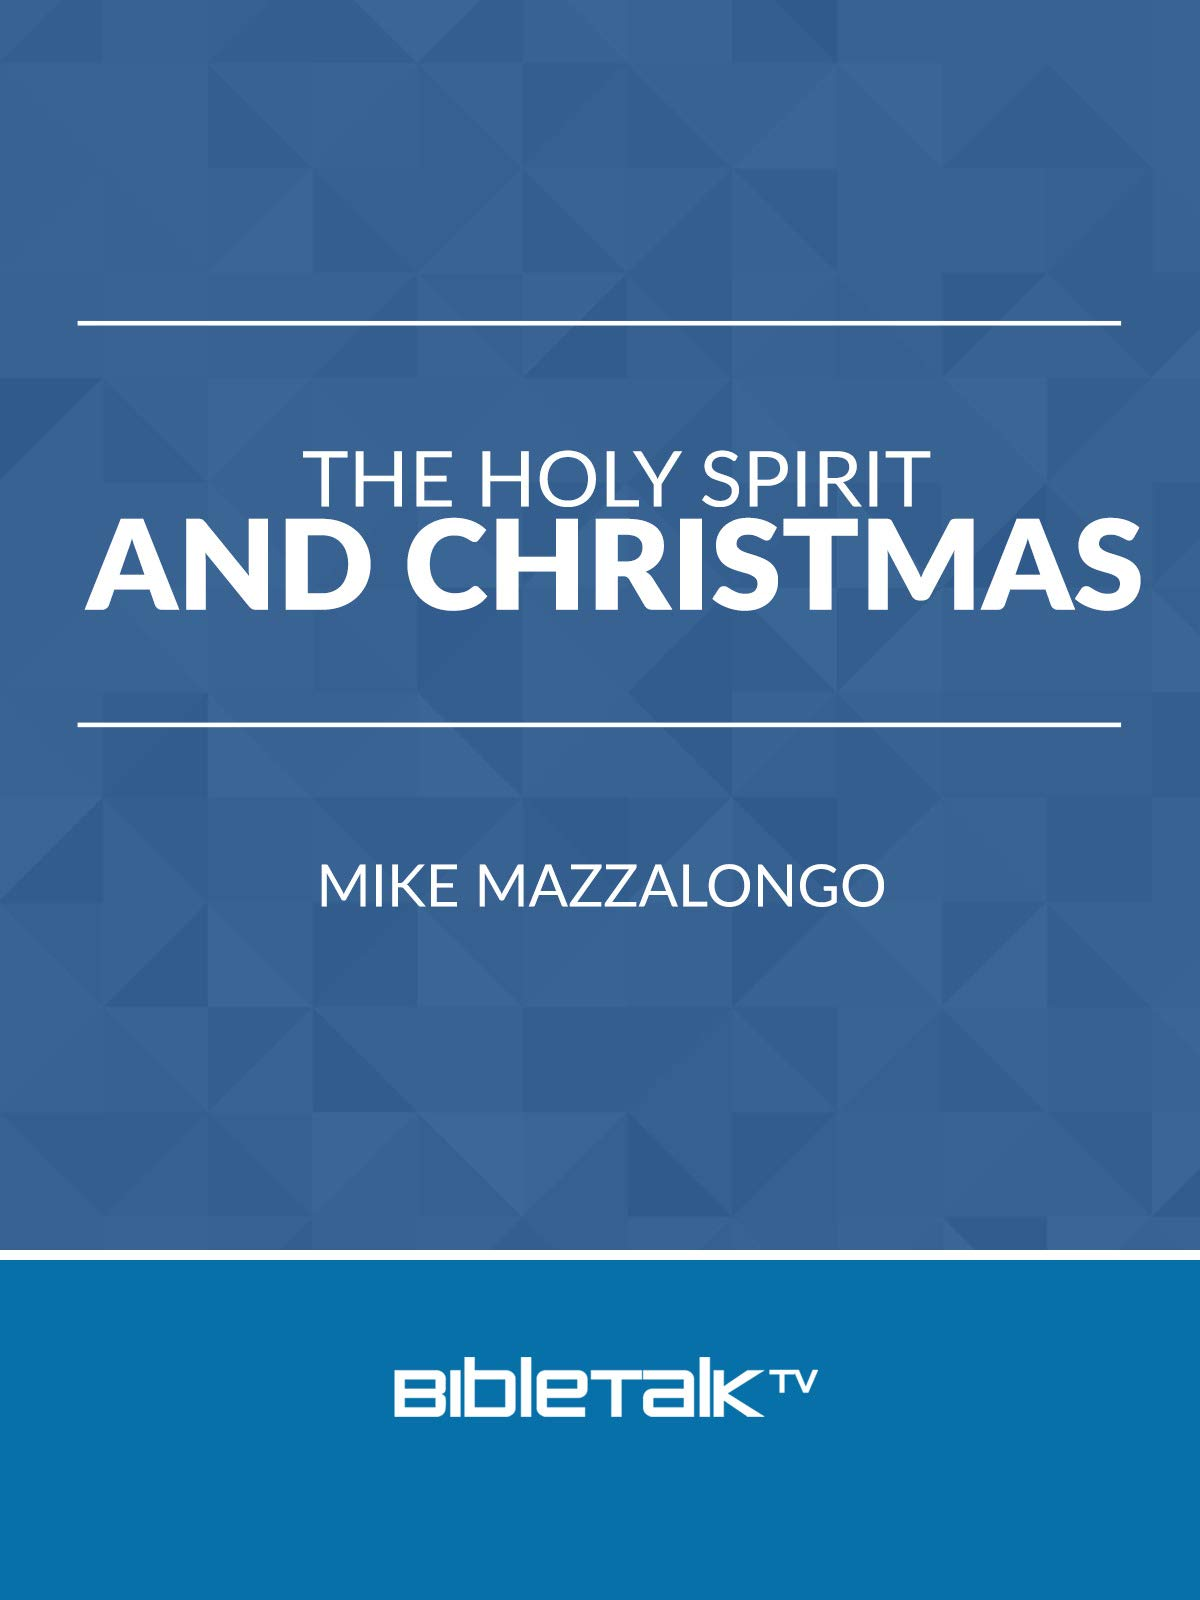 The Holy Spirit and Christmas